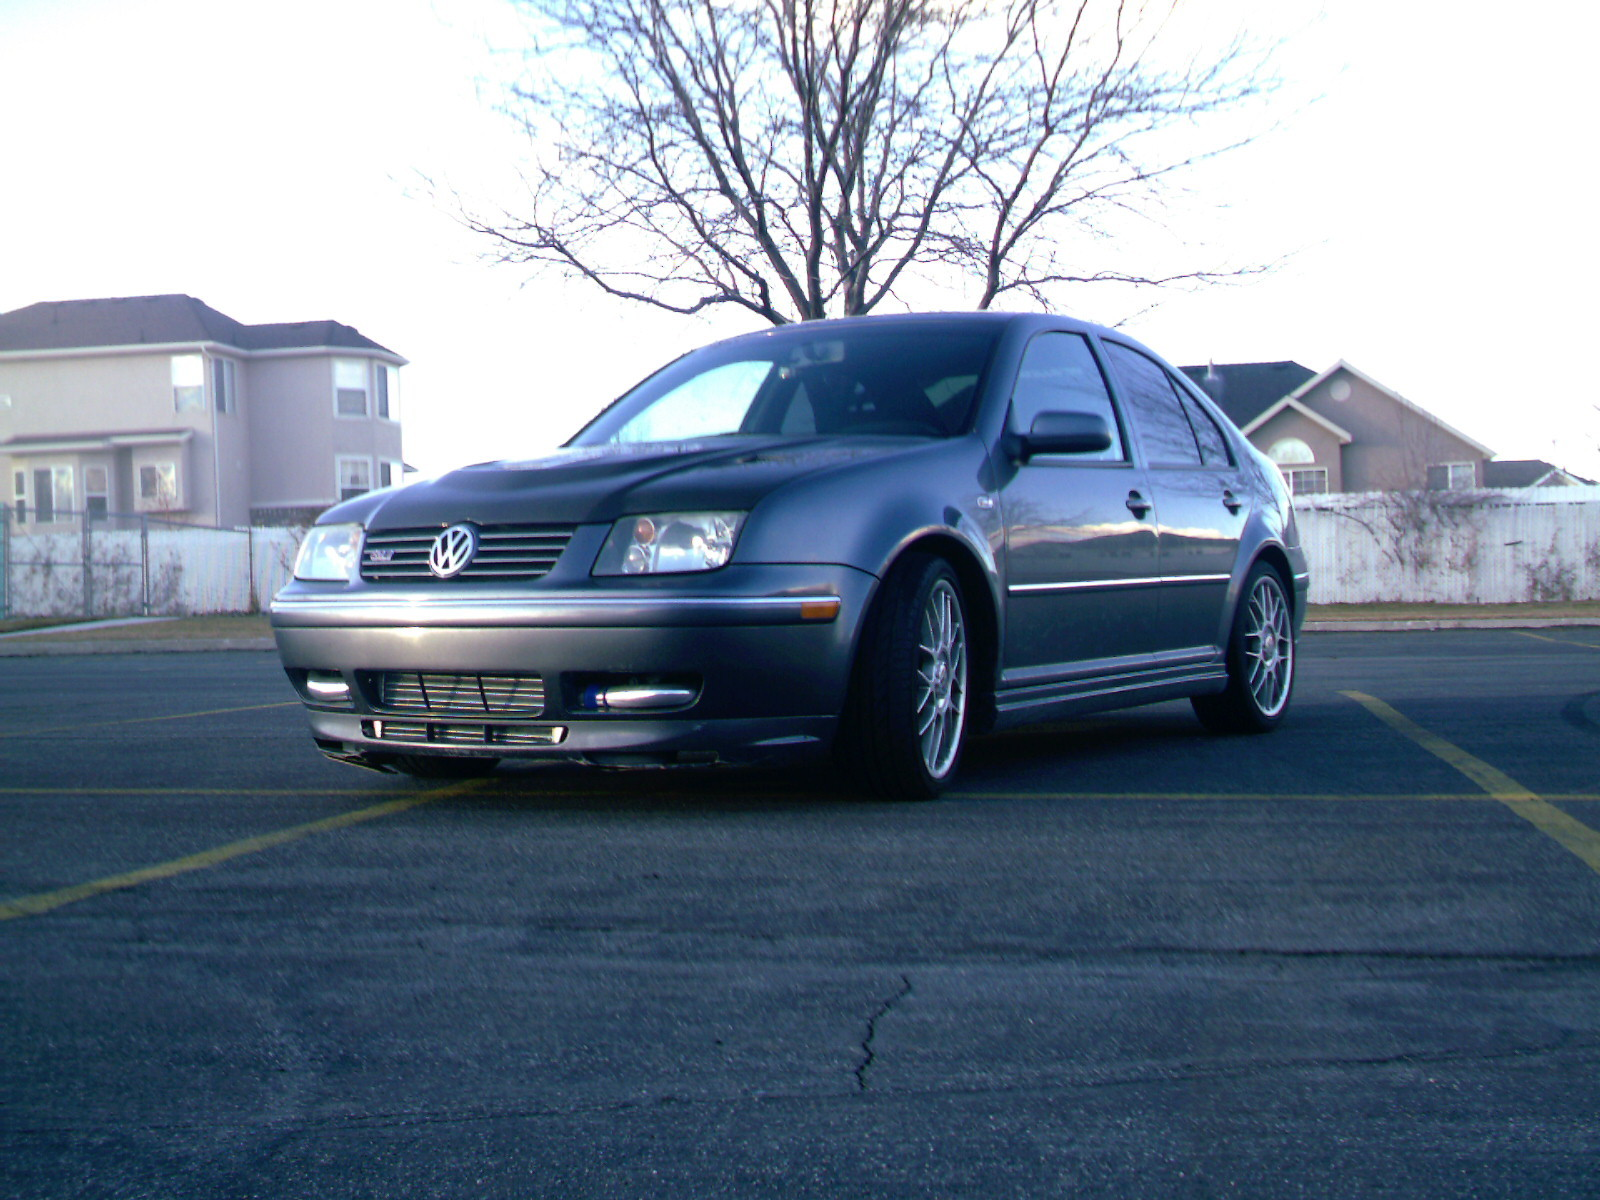 The_Ben's 2005 Volkswagen GLI